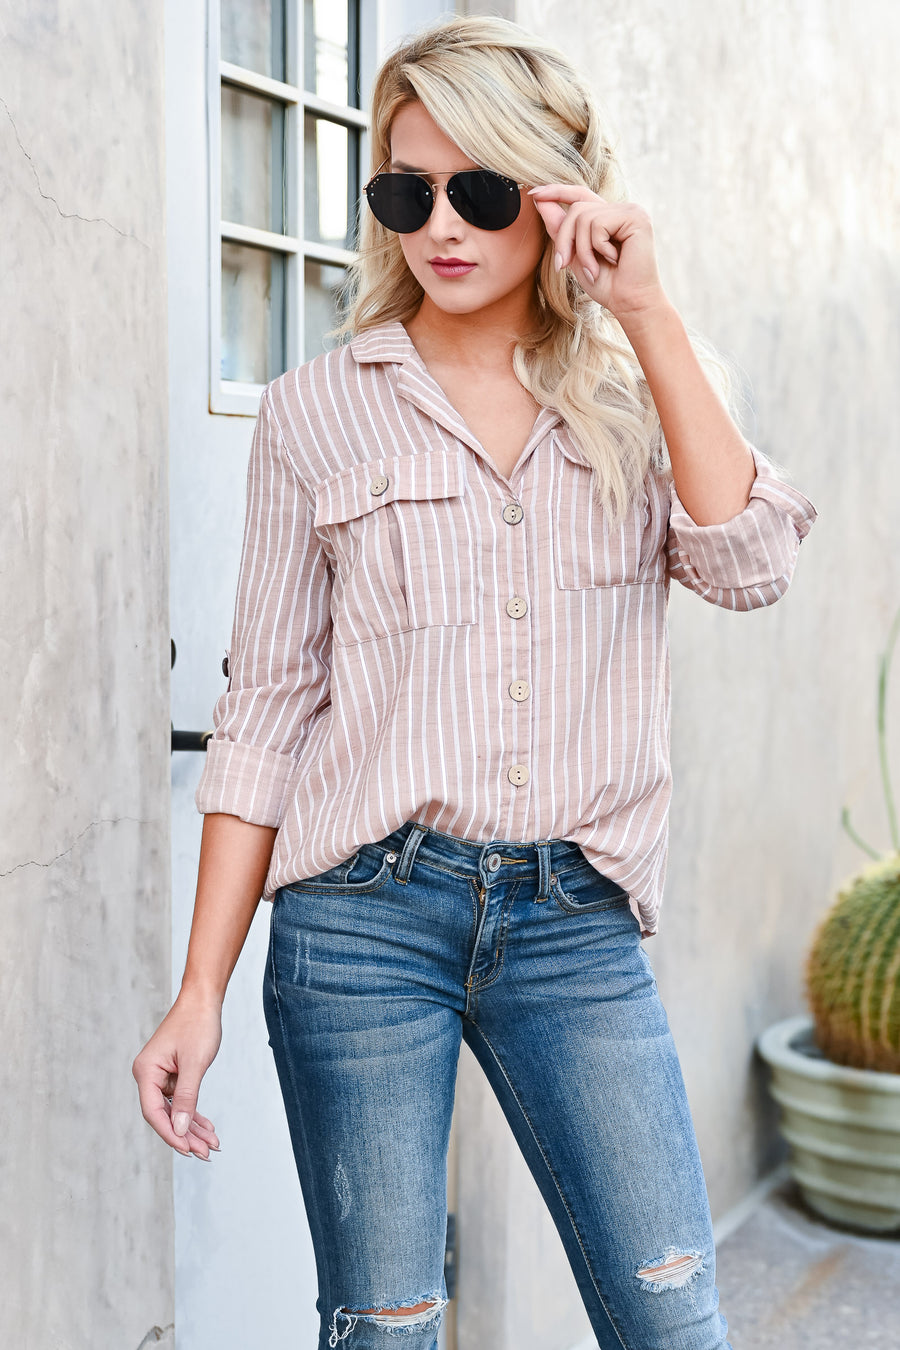 All Around The World Striped Top - Latte womens casual button up collared long sleeve front pocket blouse closet candy front